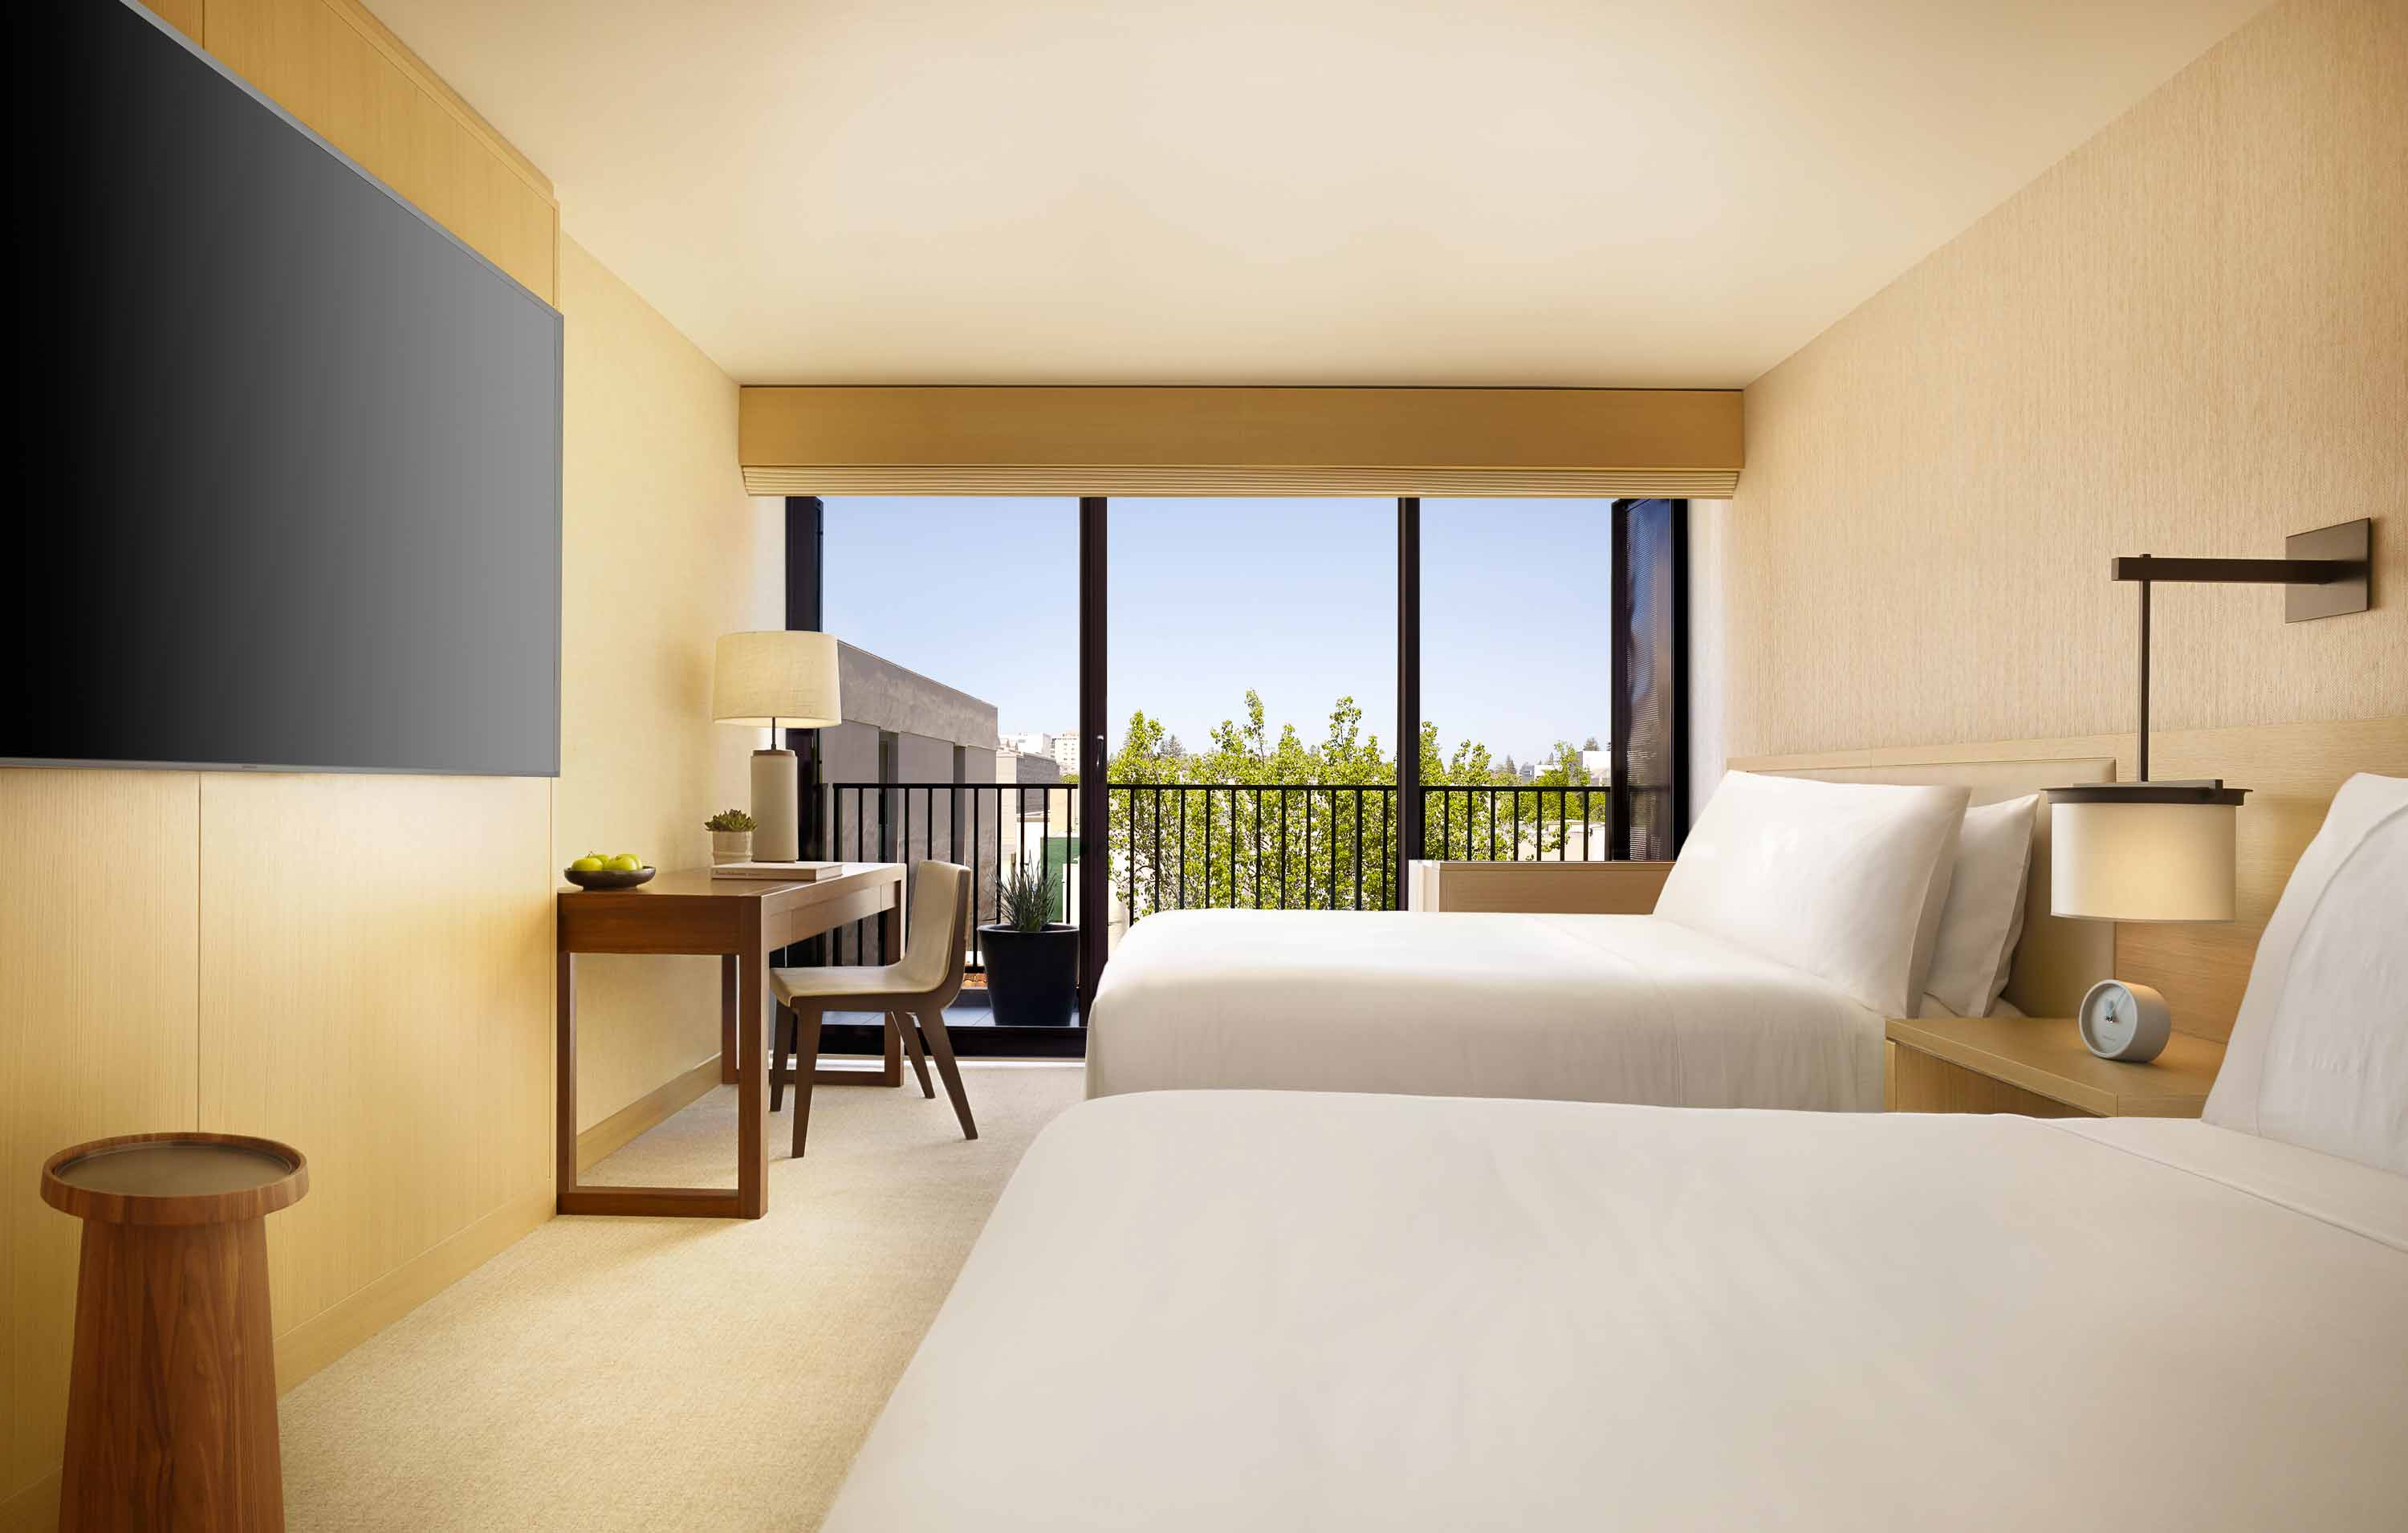 Room with two beds, desk and sliding glass door to balcony